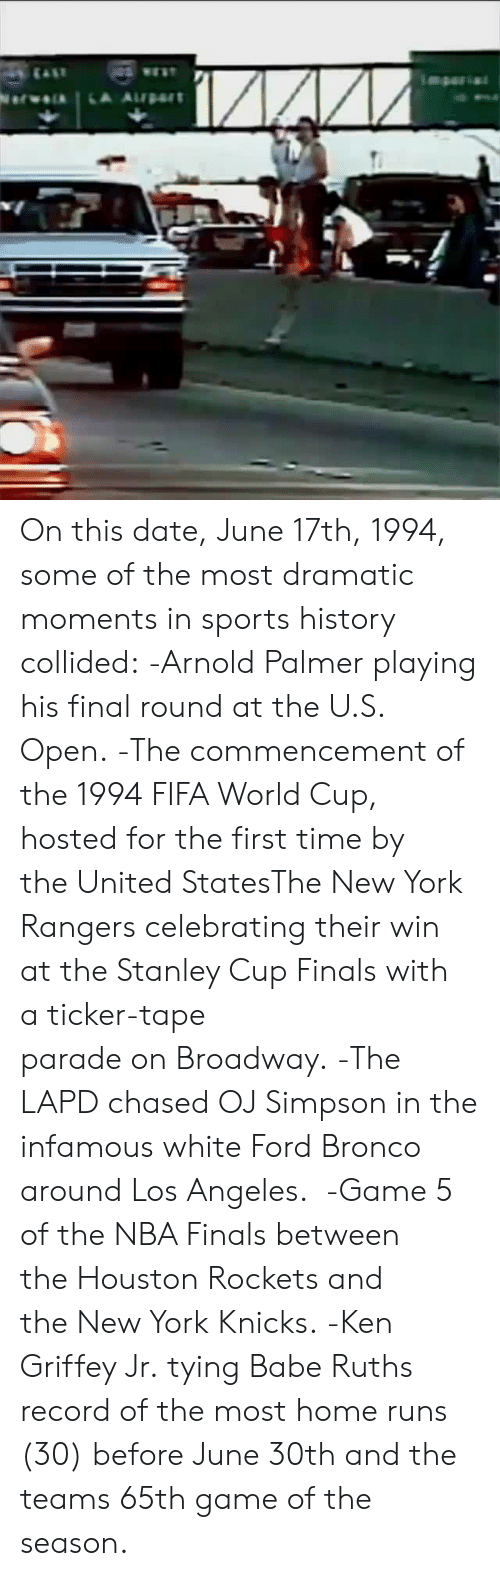 Fifa, Finals, and Houston Rockets: On this date, June 17th, 1994, some of the most dramatic moments in sports history collided:  -Arnold Palmerplaying his final round at theU.S. Open.  -The commencement of the1994 FIFA World Cup, hosted for the first time by theUnited StatesTheNew York Rangerscelebrating their win at theStanley Cup Finalswith aticker-tape paradeonBroadway.  -The LAPD chased OJ Simpson in the infamous white Ford Bronco around Los Angeles.  -Game 5 of theNBA Finalsbetween theHouston Rocketsand theNew York Knicks.  -Ken Griffey Jr.tyingBabe Ruths record of the most home runs (30) before June 30th and the teams 65th game of the season.